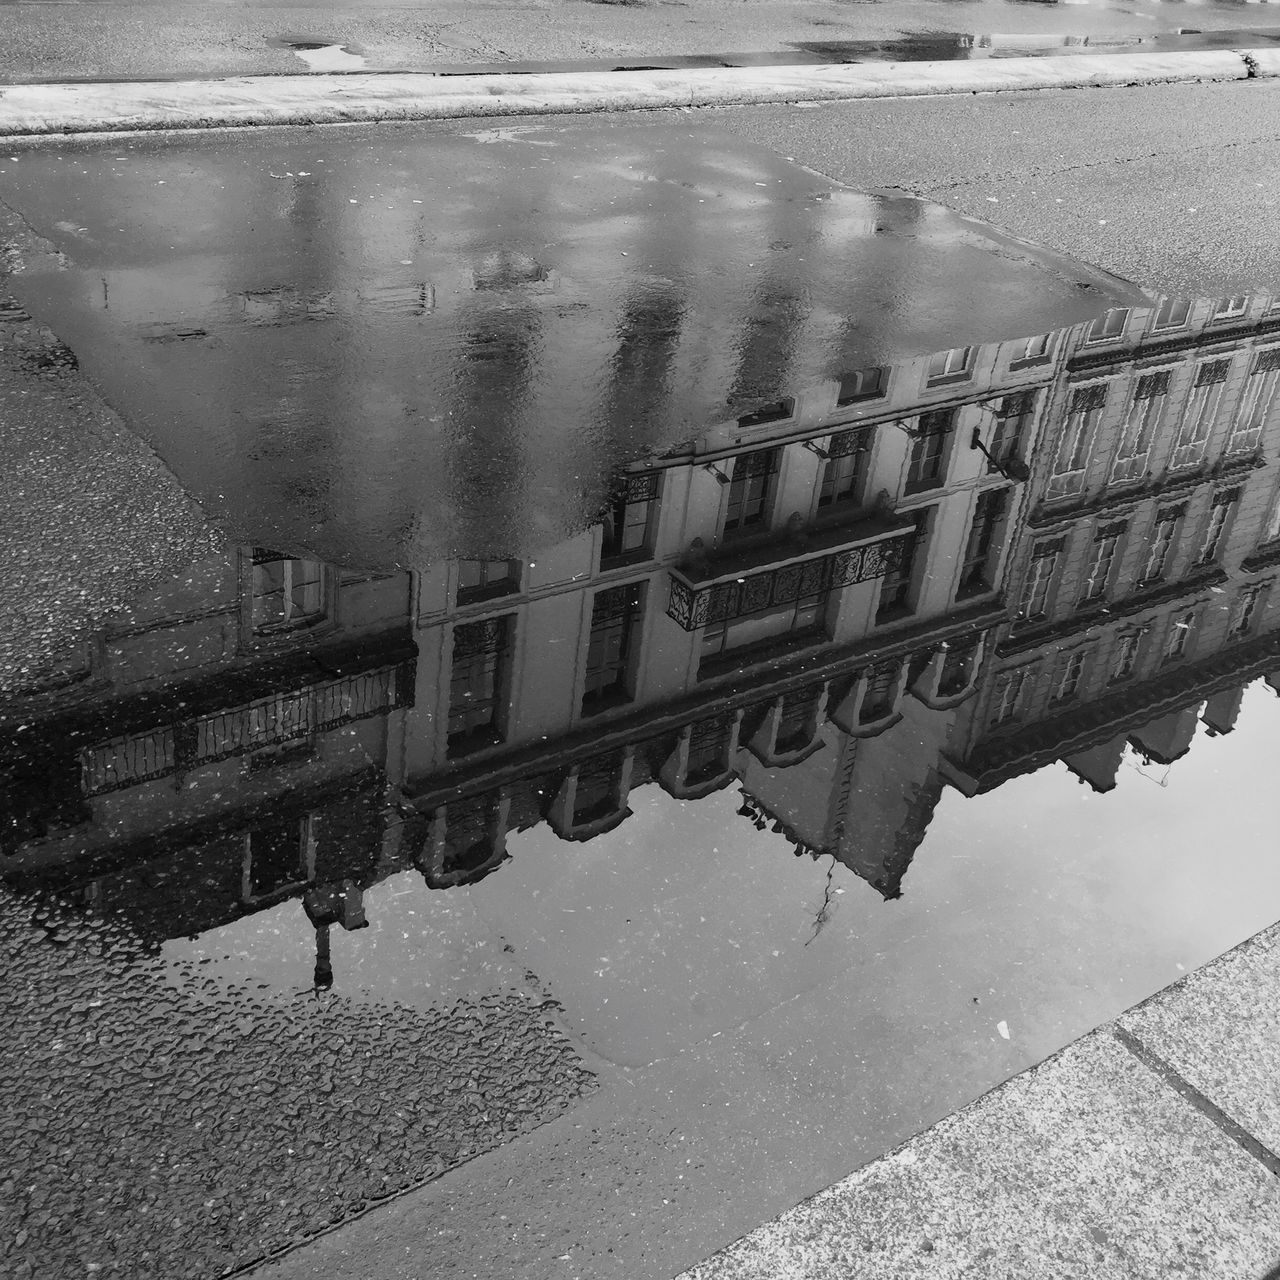 High Angle View Of Building Reflection On Street Puddle